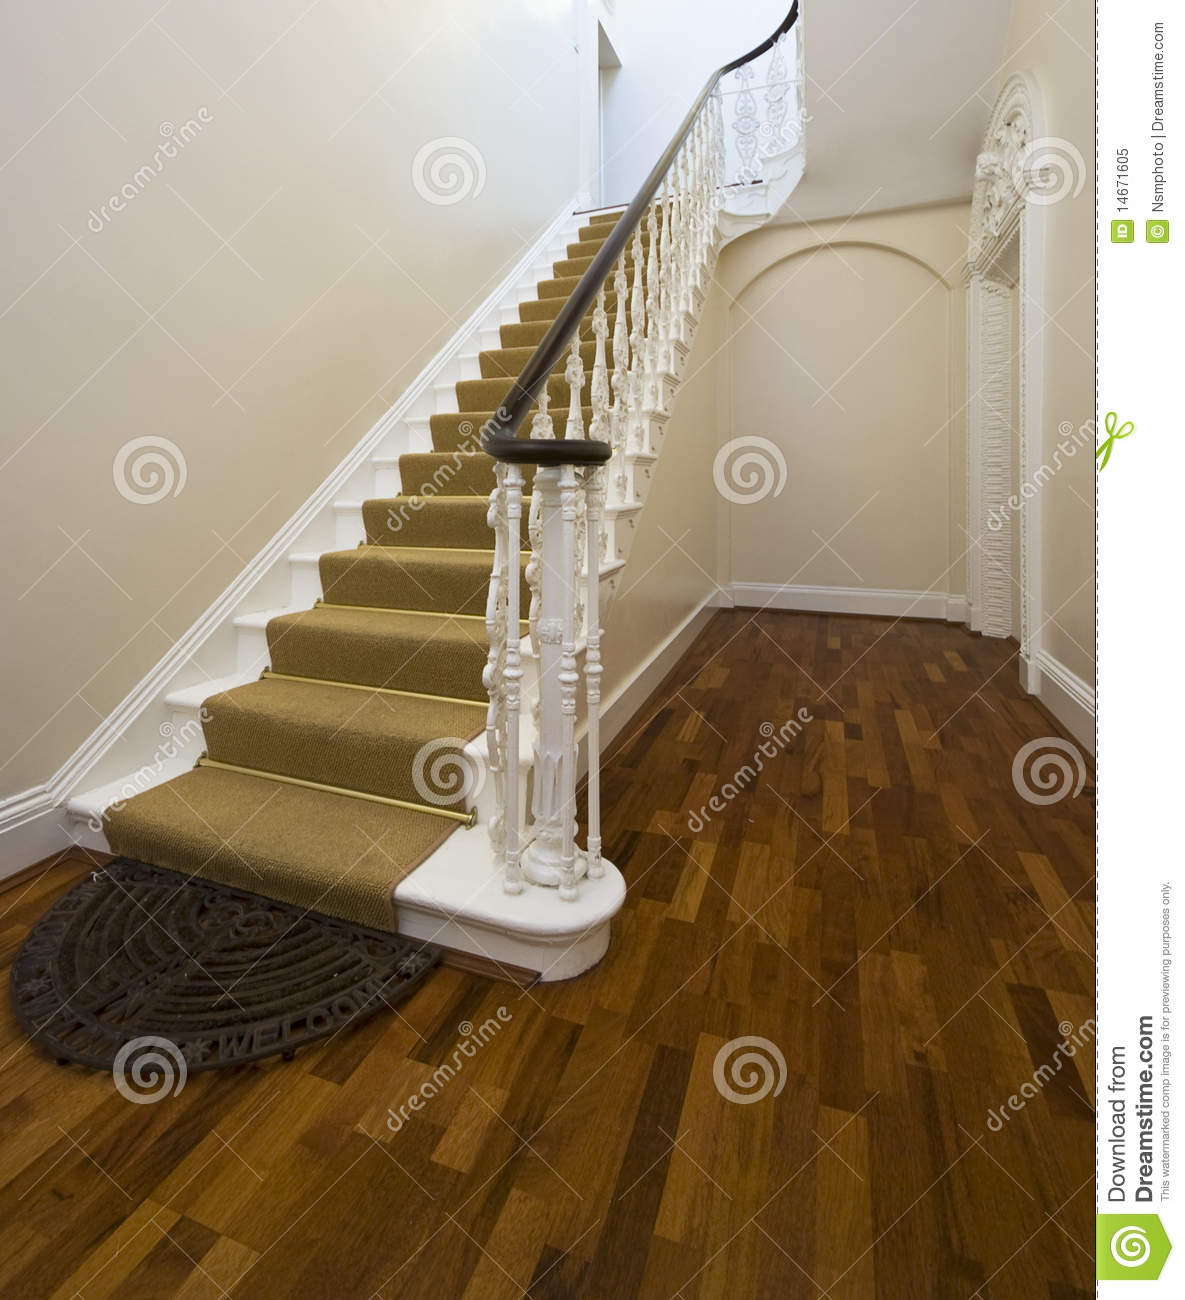 Historical entrance hall with vintage staircase stock image image 14671605 - Corridor tapijt ...